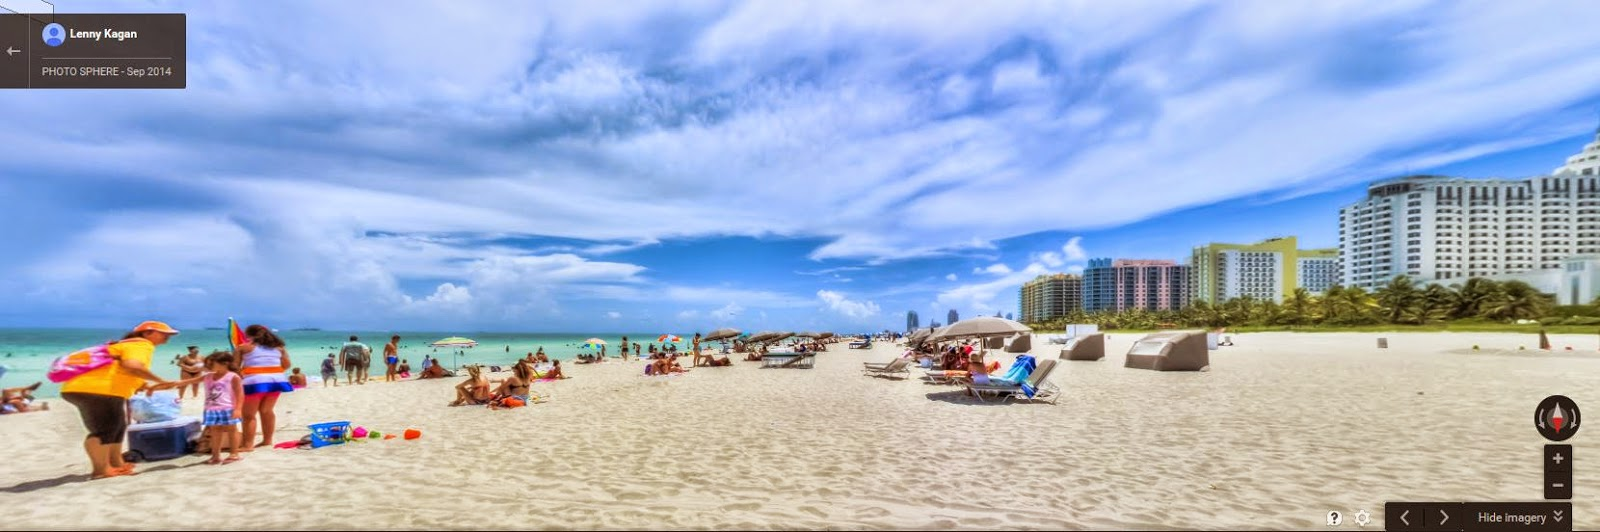 A white, sandy beach with a bunch of vacationers lounging and wearing bright colors.